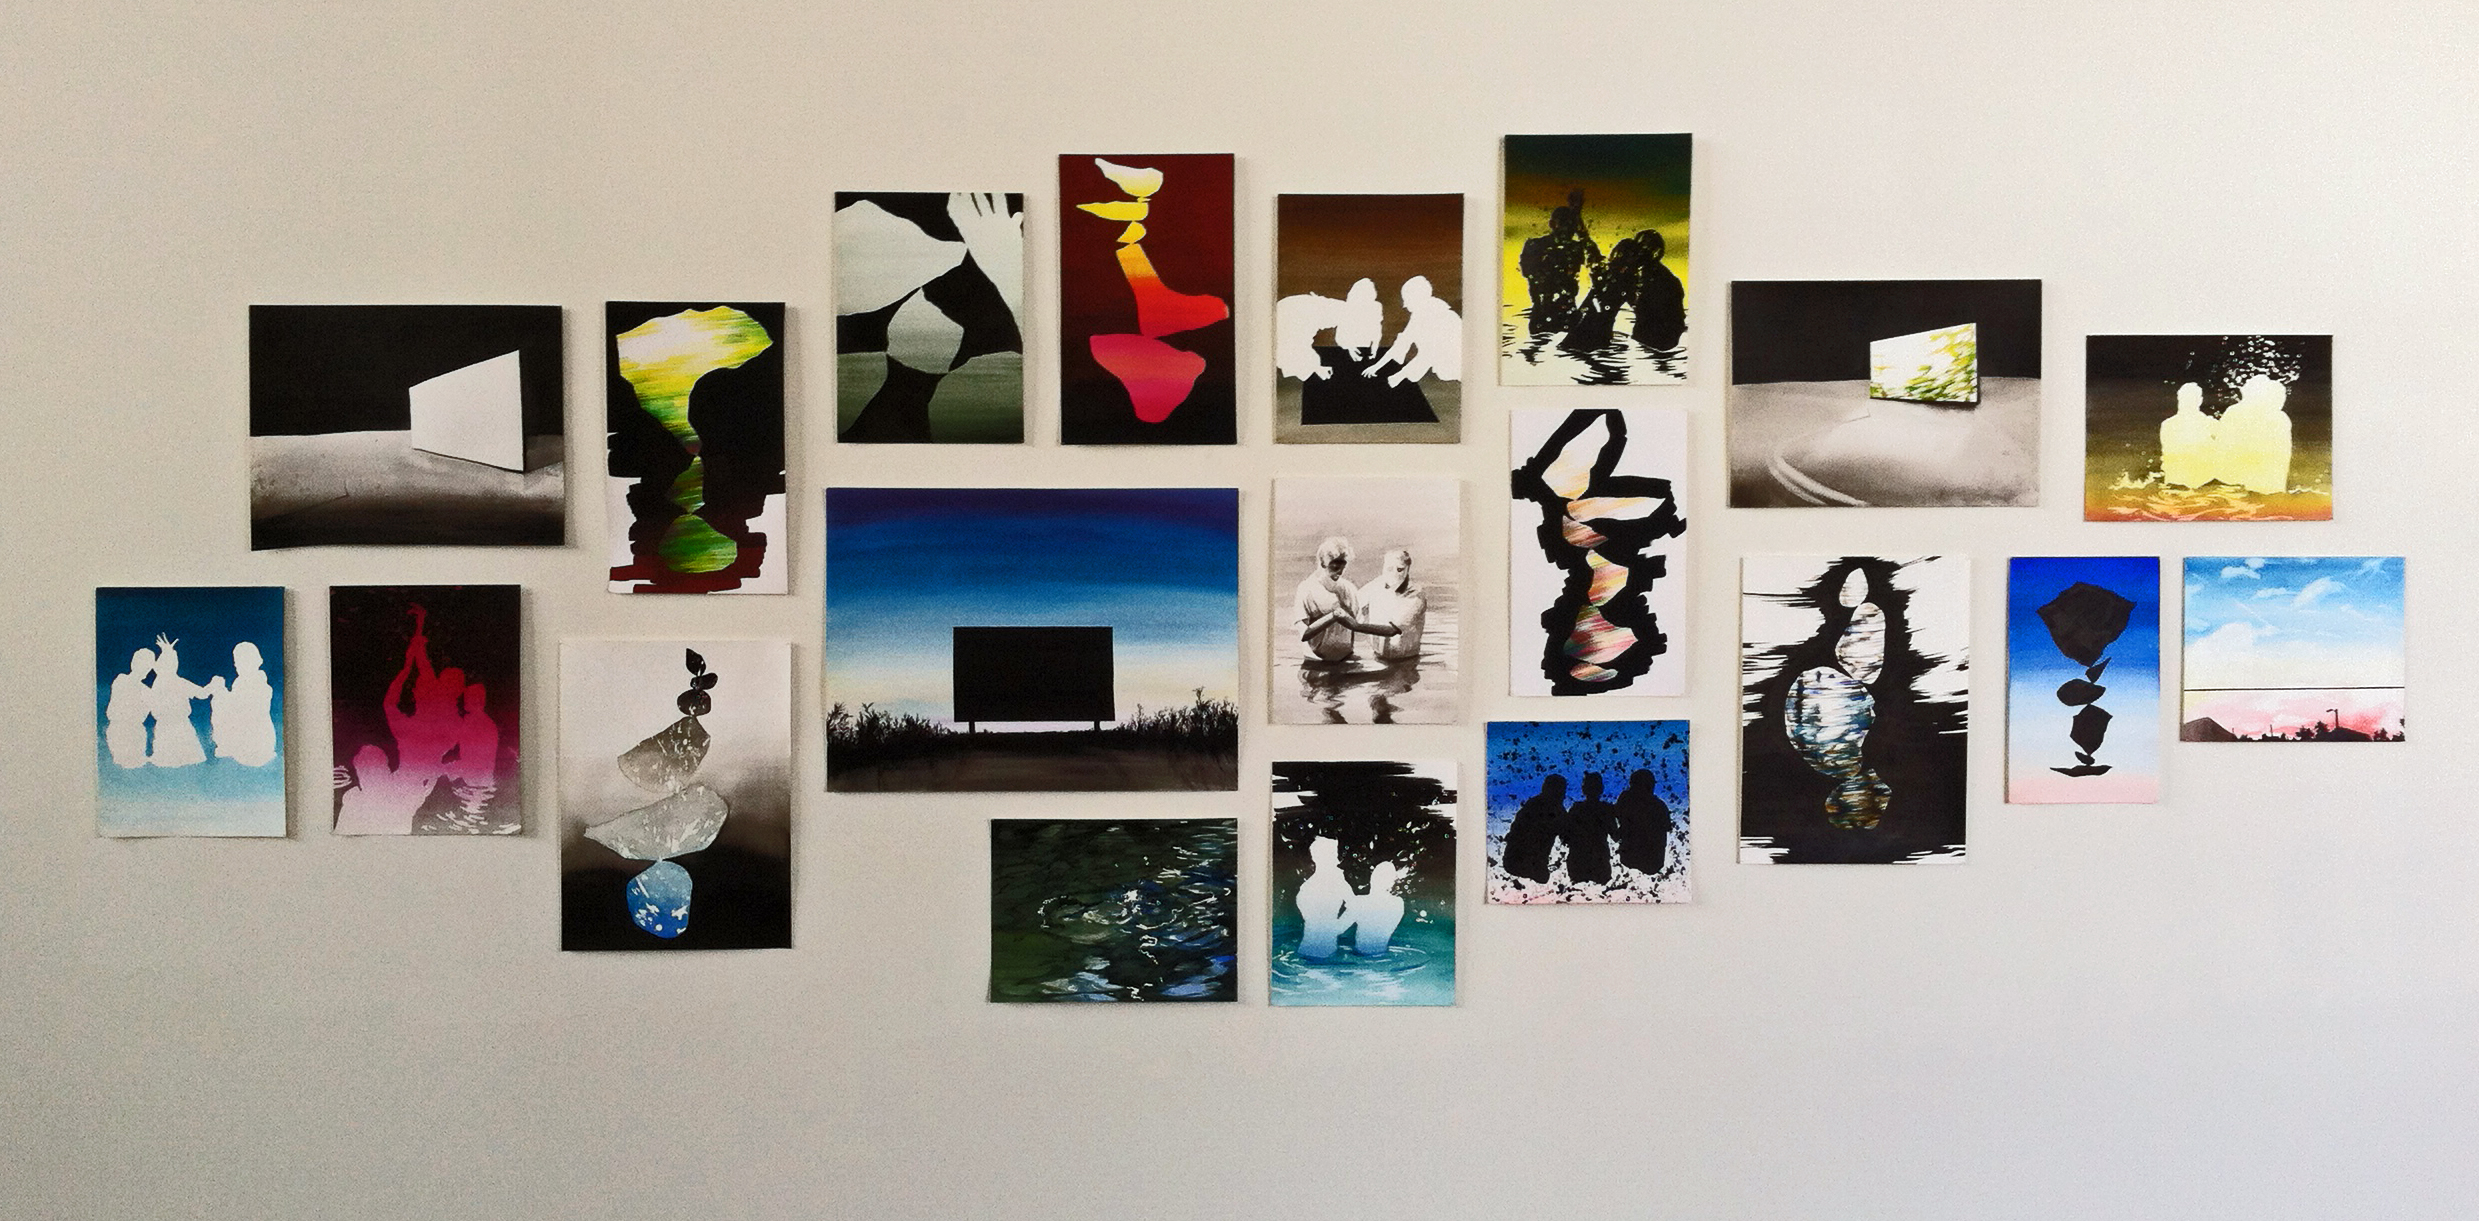 Studio Wall, 2014, oil on paper, sizes vary